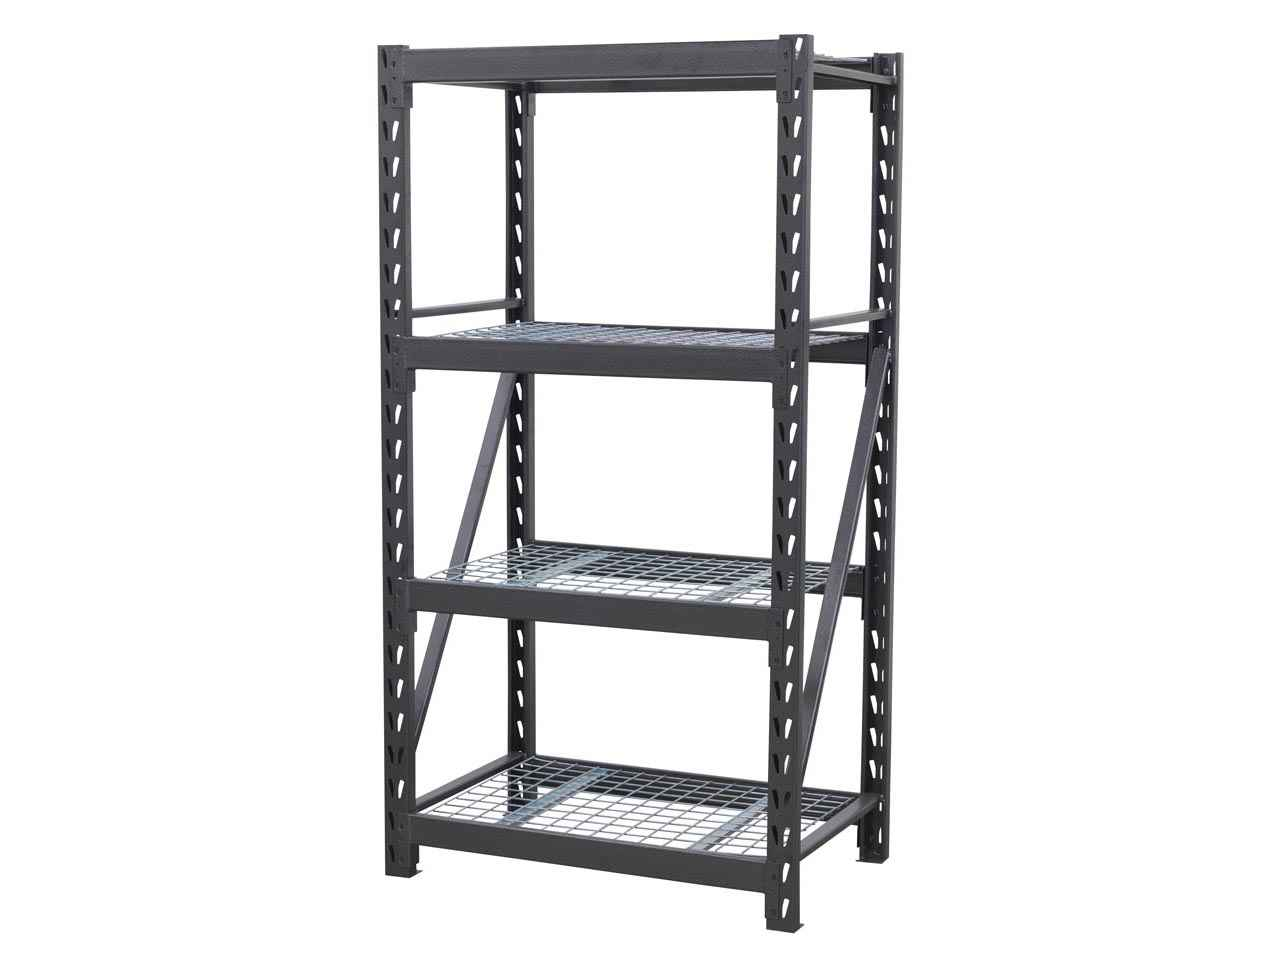 Mesh Shelving Sealey Ap6372 Heavy Duty Racking Unit With 4 Mesh Shelves 640kg Capacity Per Level 978mm